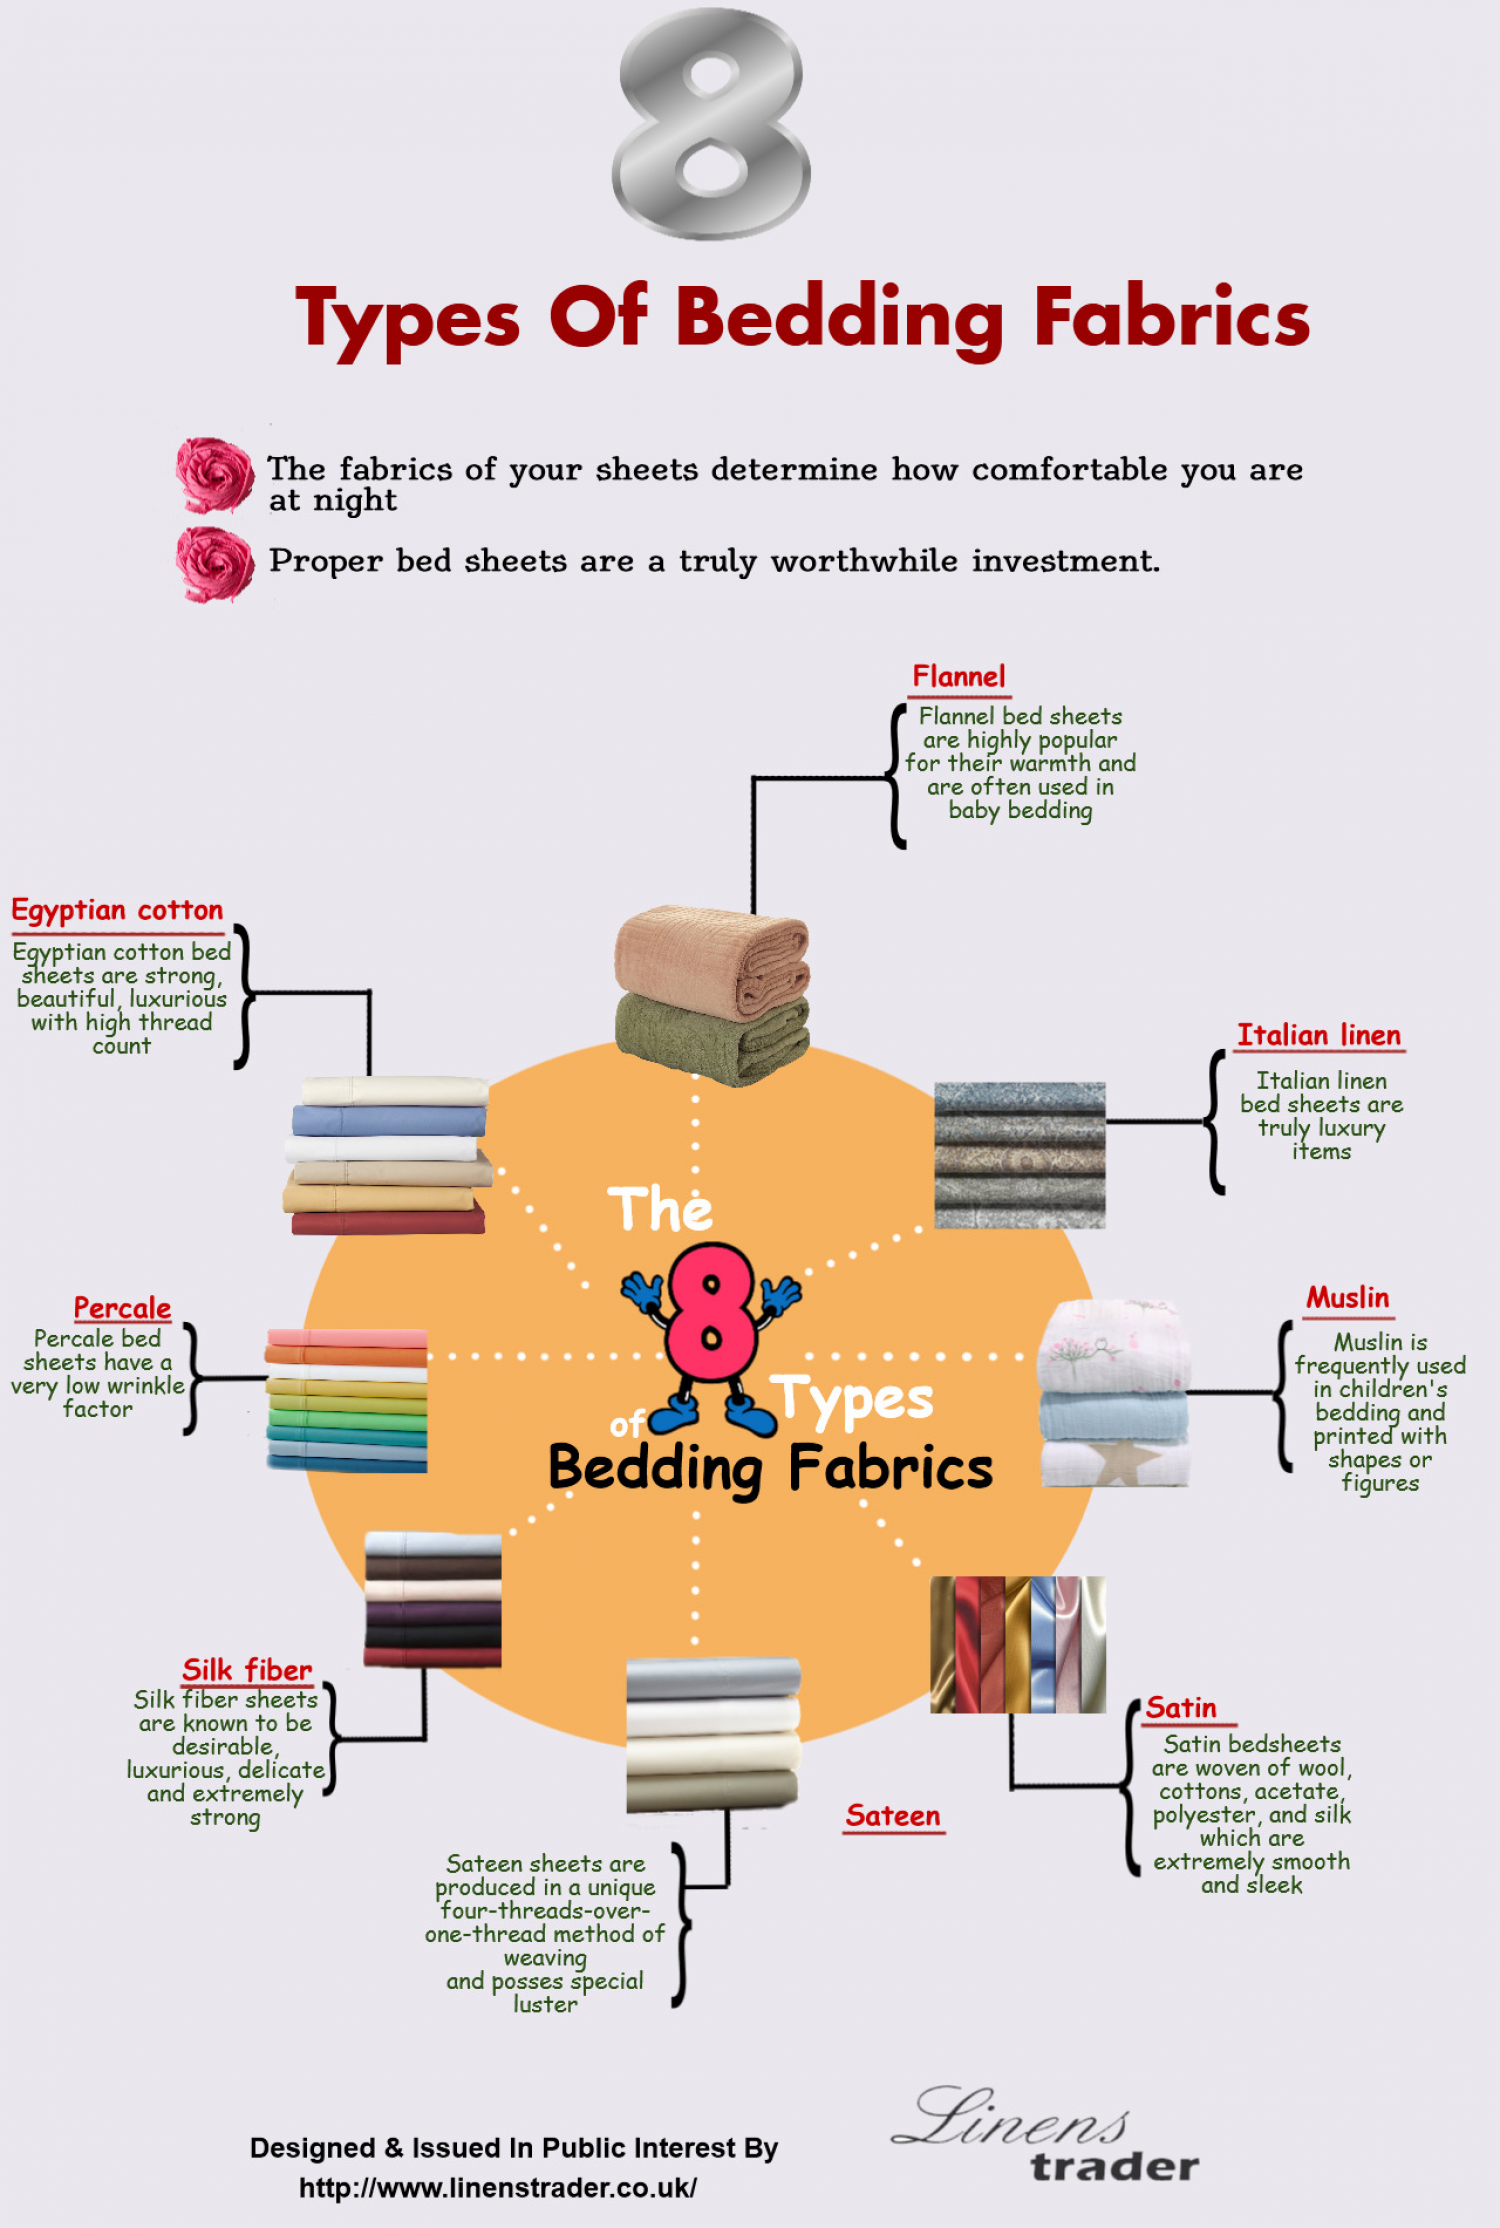 8 Types Of Bedding Fabrics